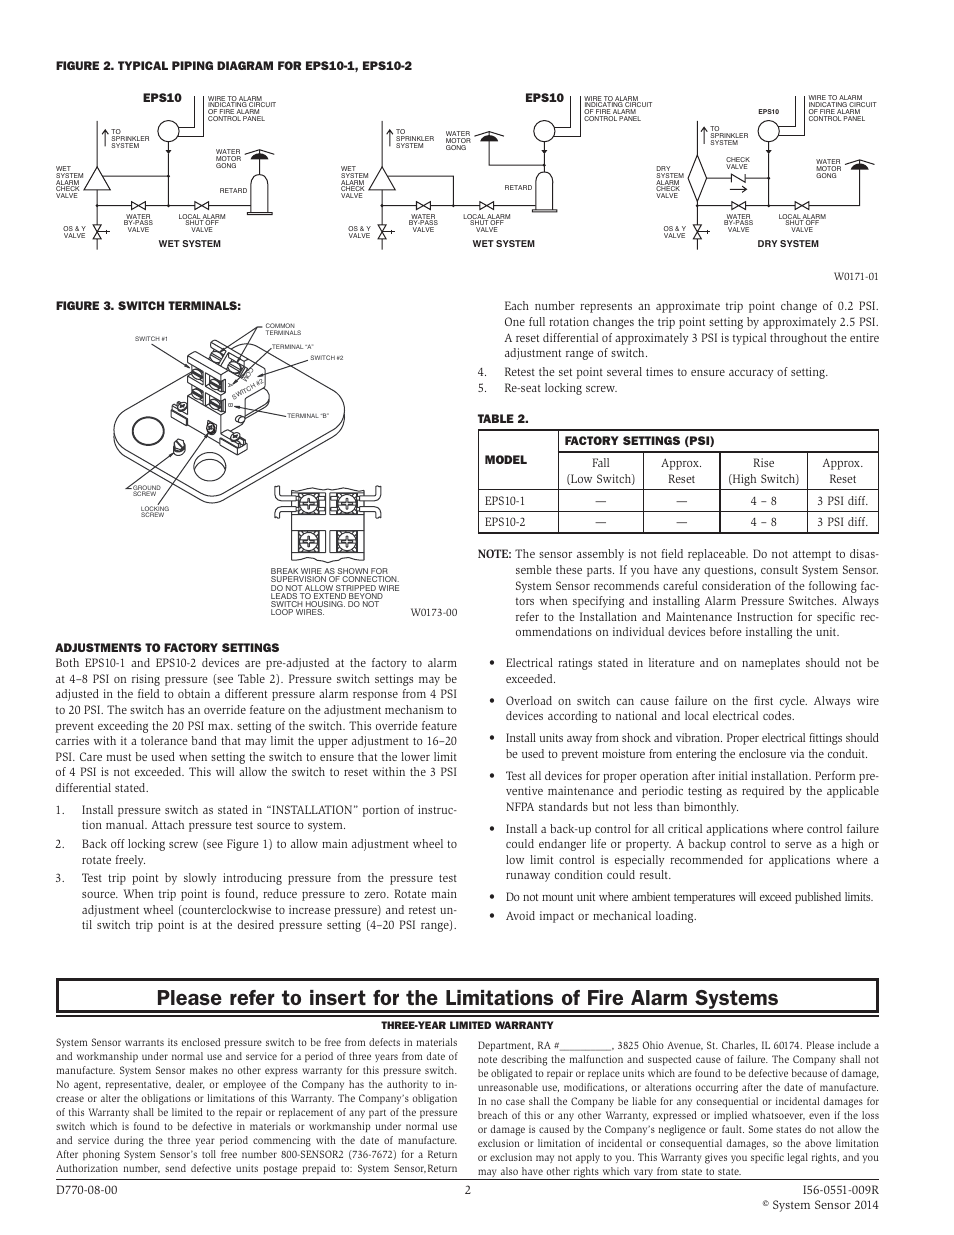 system sensor eps10 1 and eps10 2 page2 figure 3 switch terminals, eps10 system sensor eps10 1 and system sensor dh1851ac wiring diagrams at panicattacktreatment.co